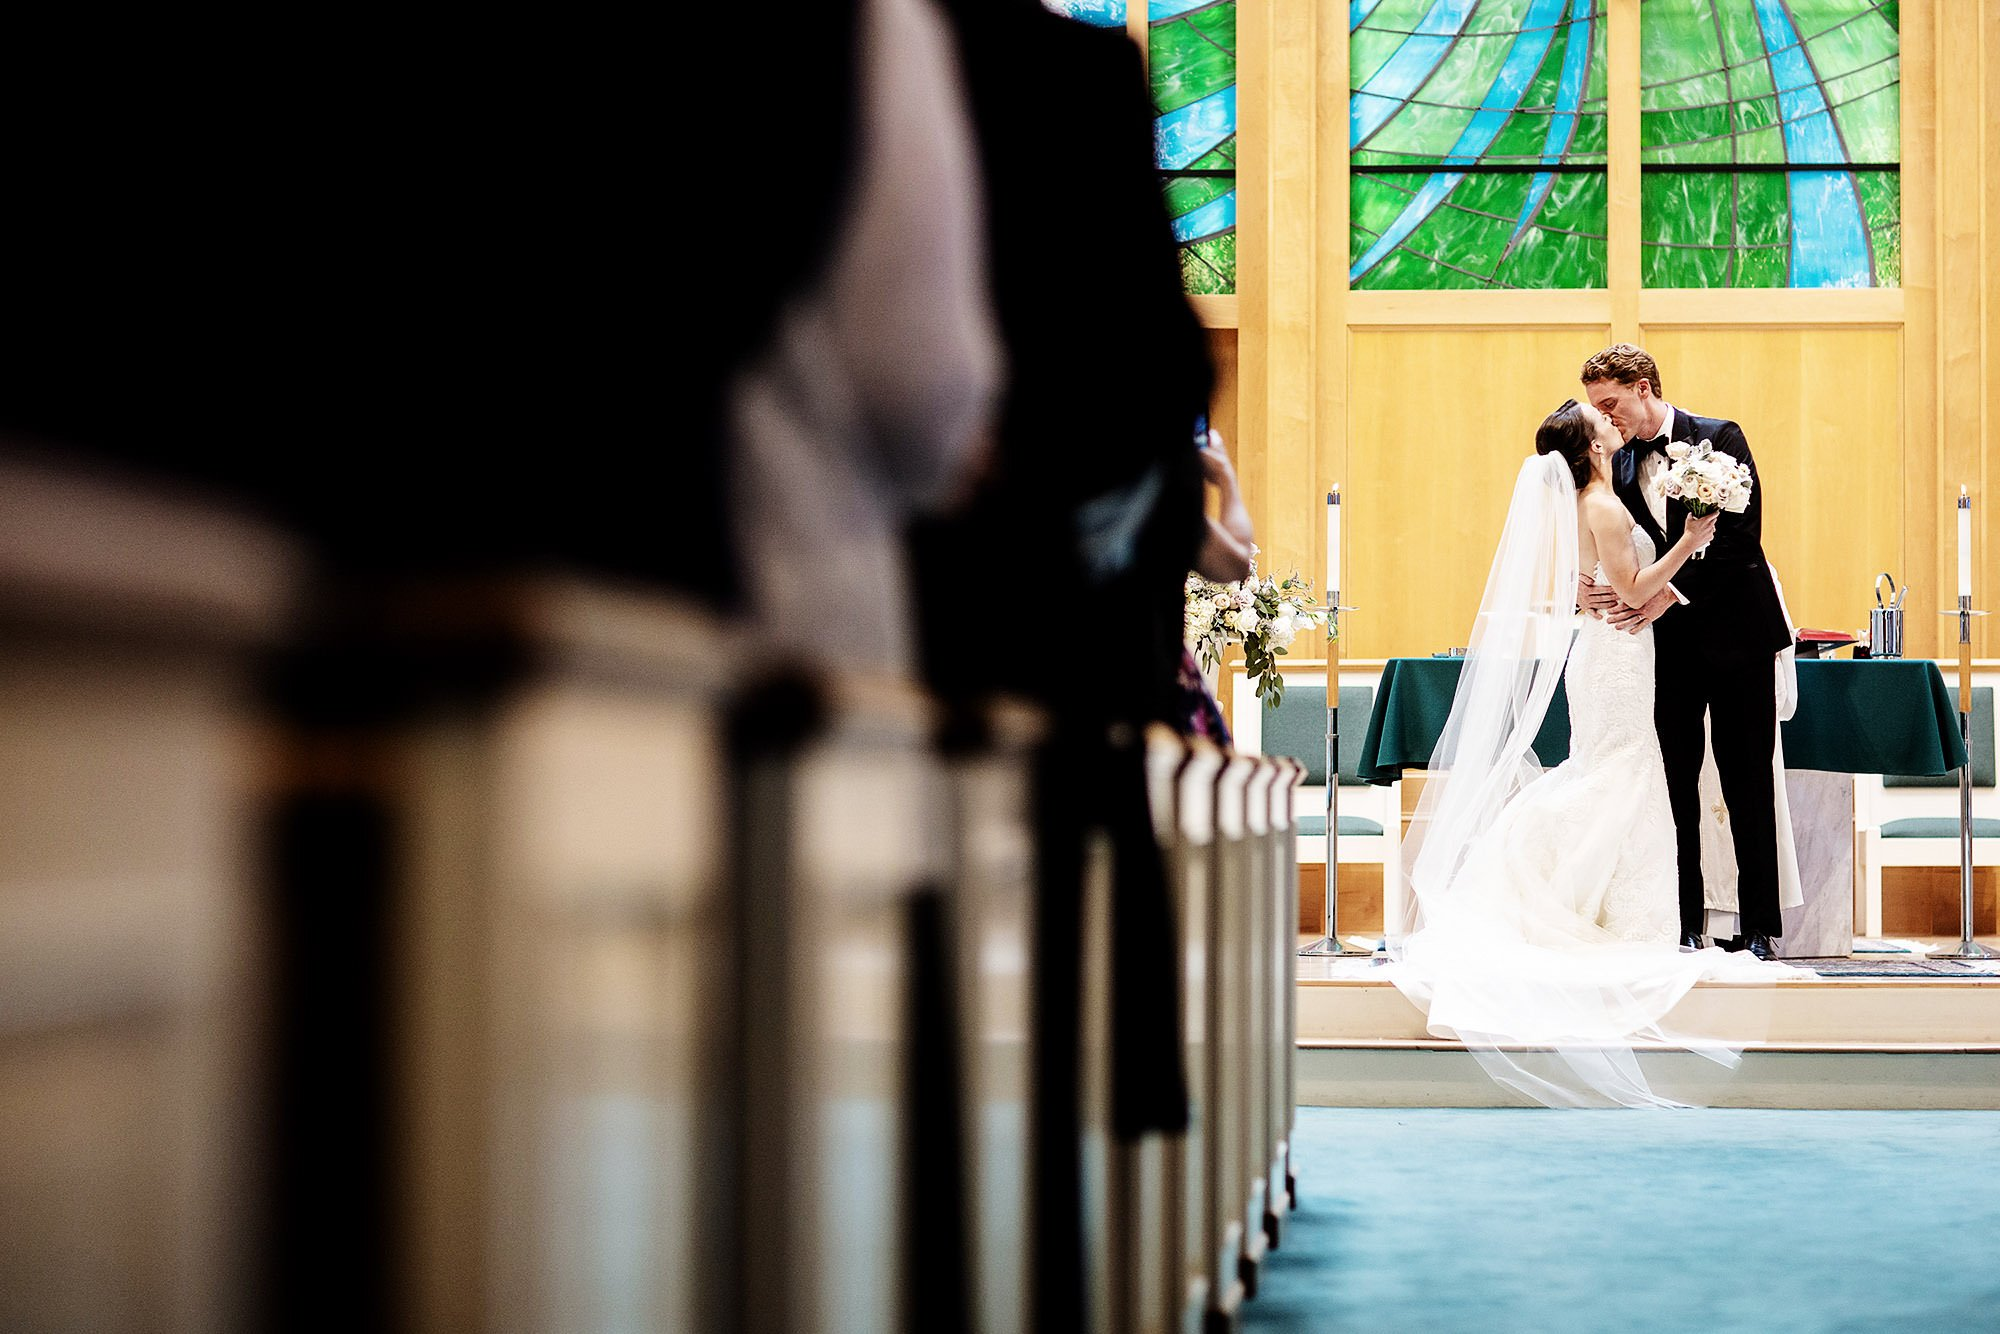 The bride and groom's First Kiss at St. Joan of Arc Church, Orleans, MA